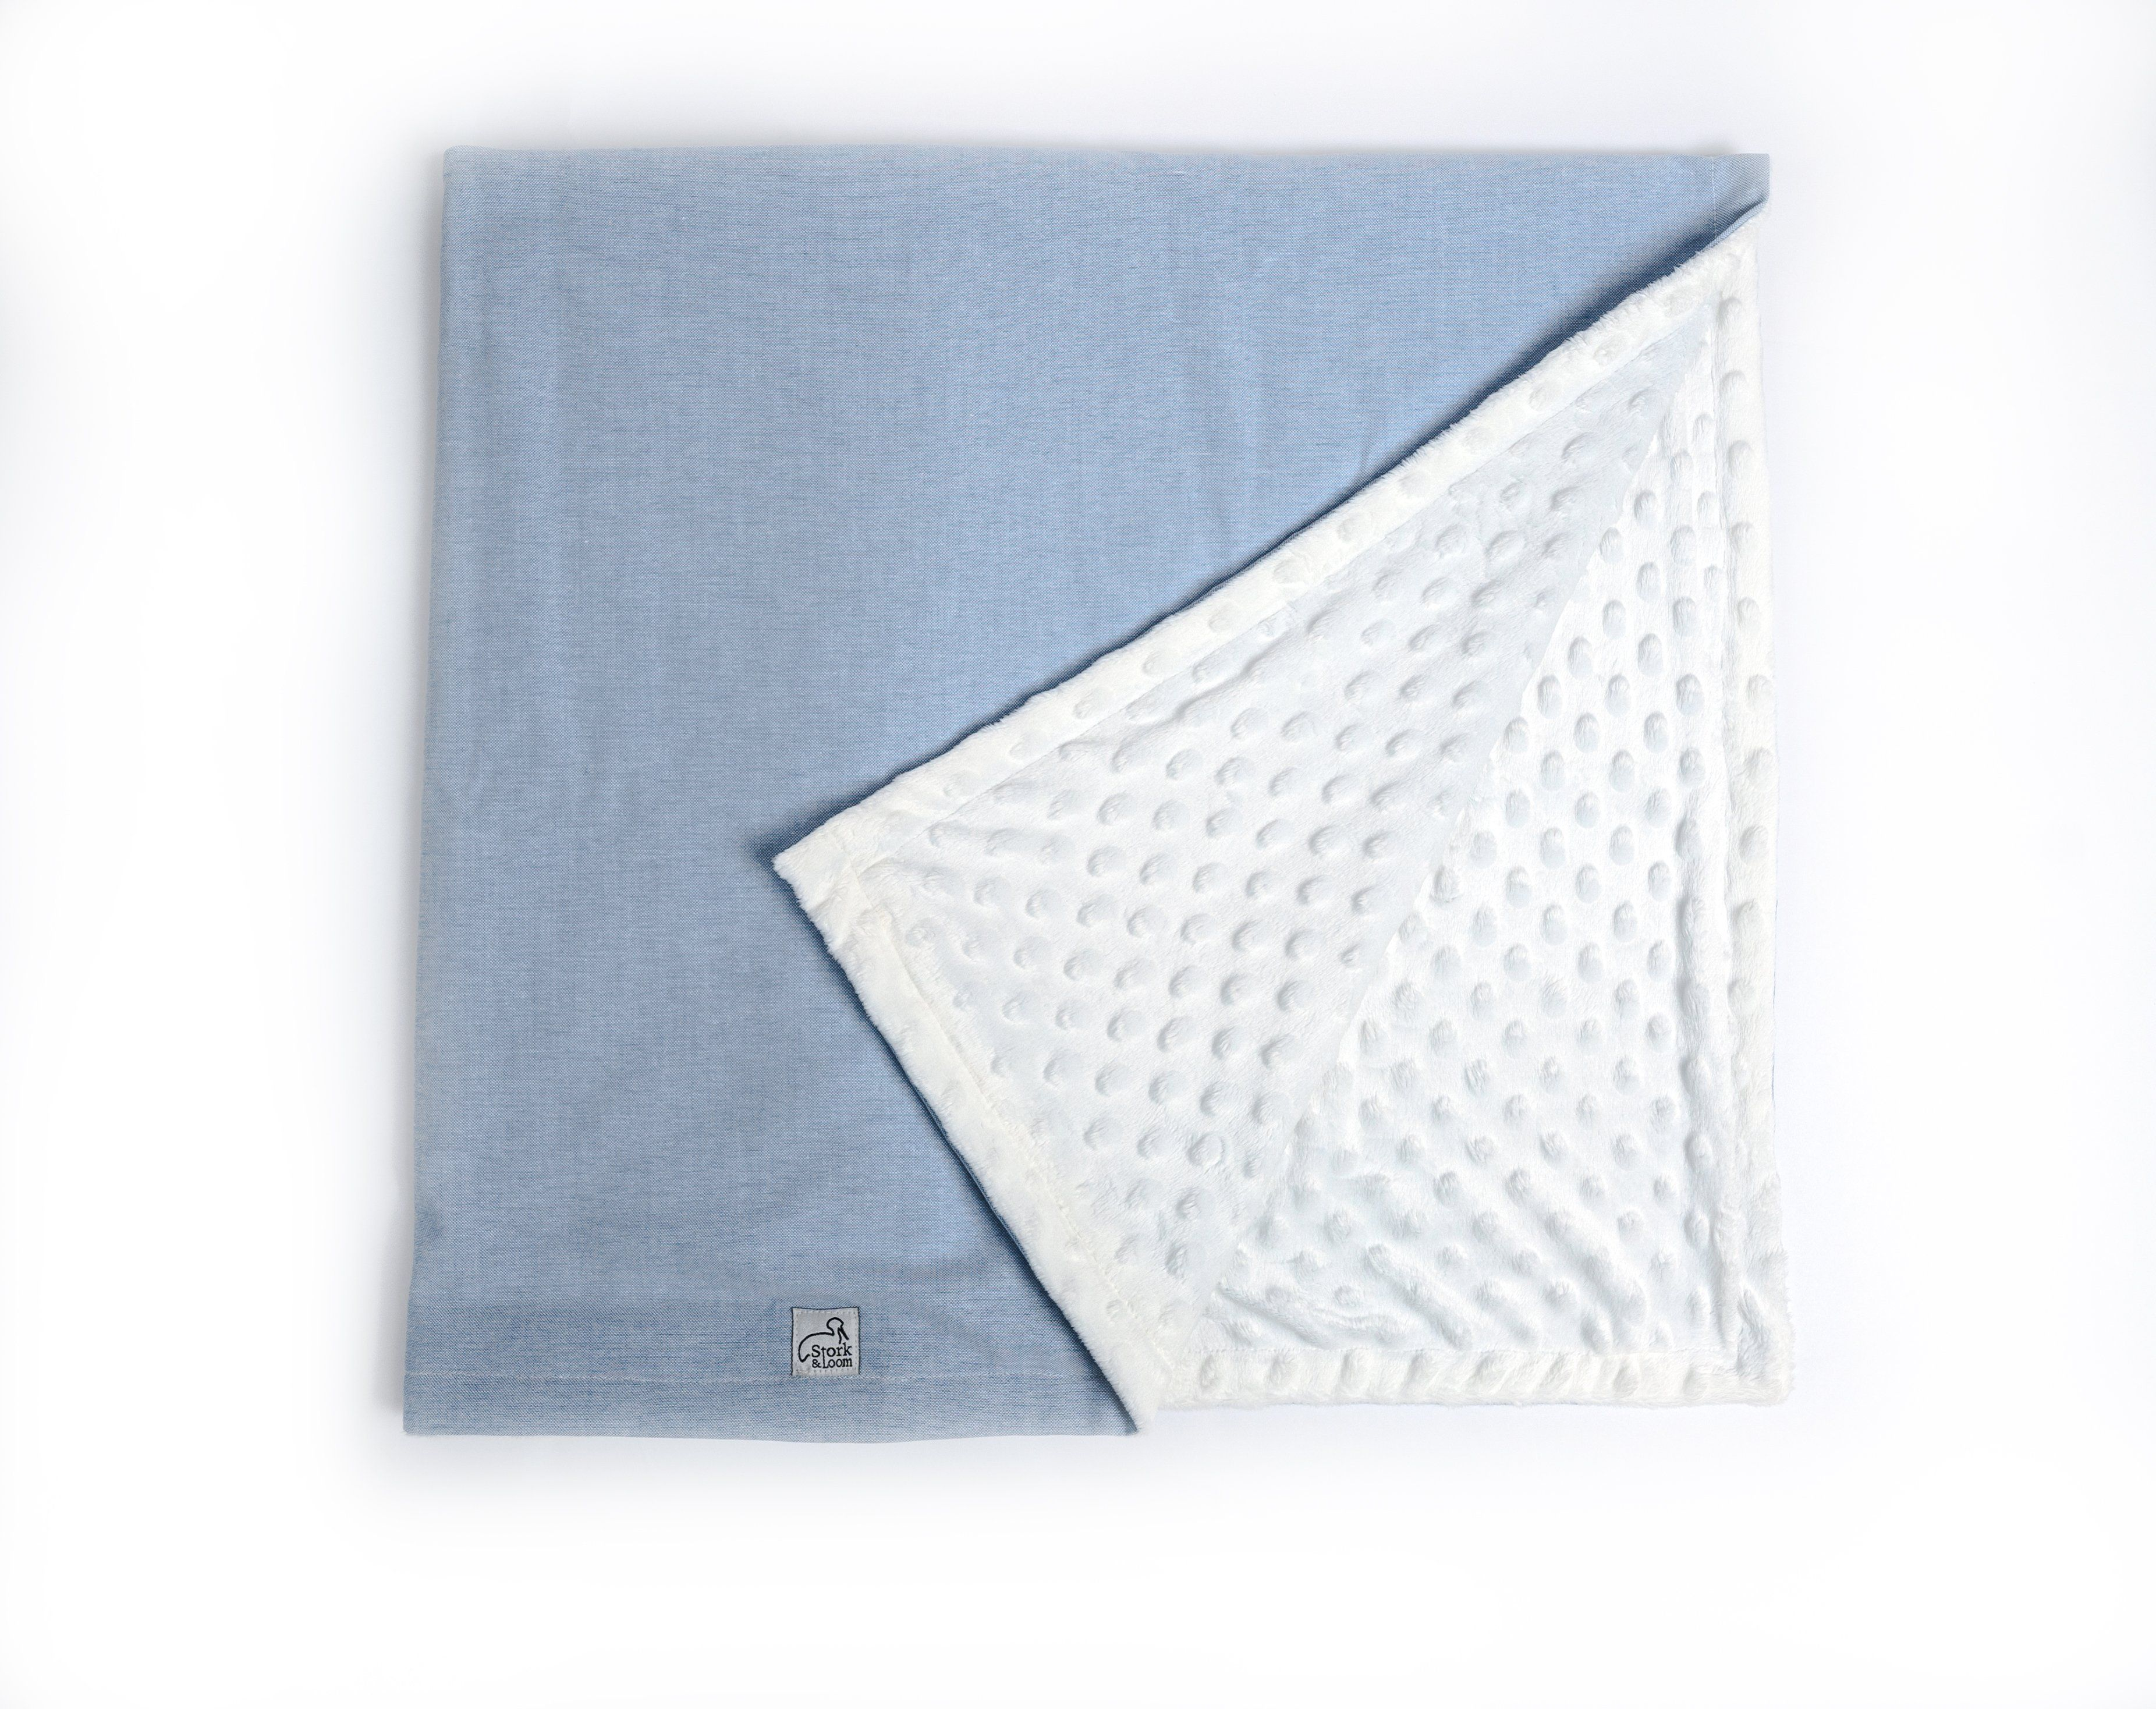 """Ultra-SoftOur blankets feature an ultra-soft minky dot backing that is comfortable for your baby and perfect for snuggling up. Perfect SizeOur blankets are just the right size for your baby meaning you don't have to worry about bulks of fabric and keeping your baby too warm. Stylish and ModernOur designs are cute, timeless, and modern making nap time even cuter than before. Materials: 100% polyester minky dot fabric, 100% cotton oxfordCare: Machine washable, do not bleachSize: 38"""" x 28"""""""